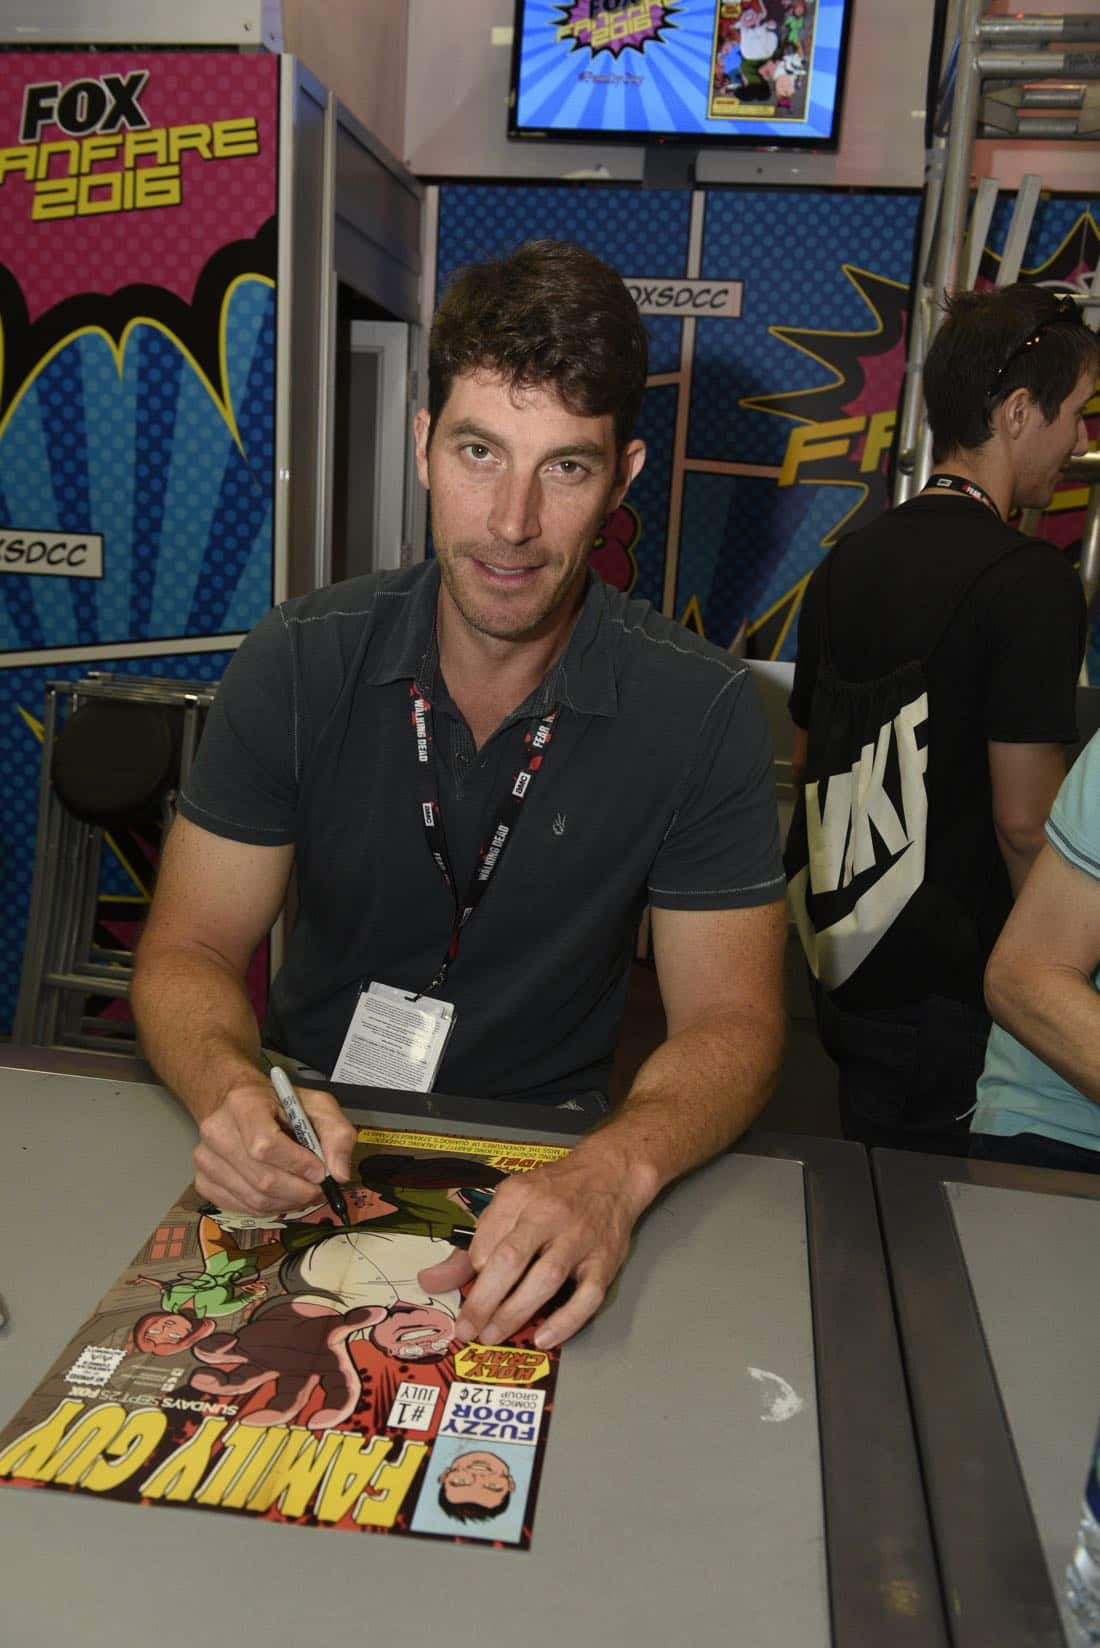 FOX FANFARE AT SAN DIEGO COMIC-CON © 2016: FAMILY GUY Executive Producer Steve Callaghan during FAMILY GUY booth signing on Saturday, July 23 at the FOX FANFARE AT SAN DIEGO COMIC-CON © 2016. CR: Alan Hess/FOX © 2016 FOX BROADCASTING